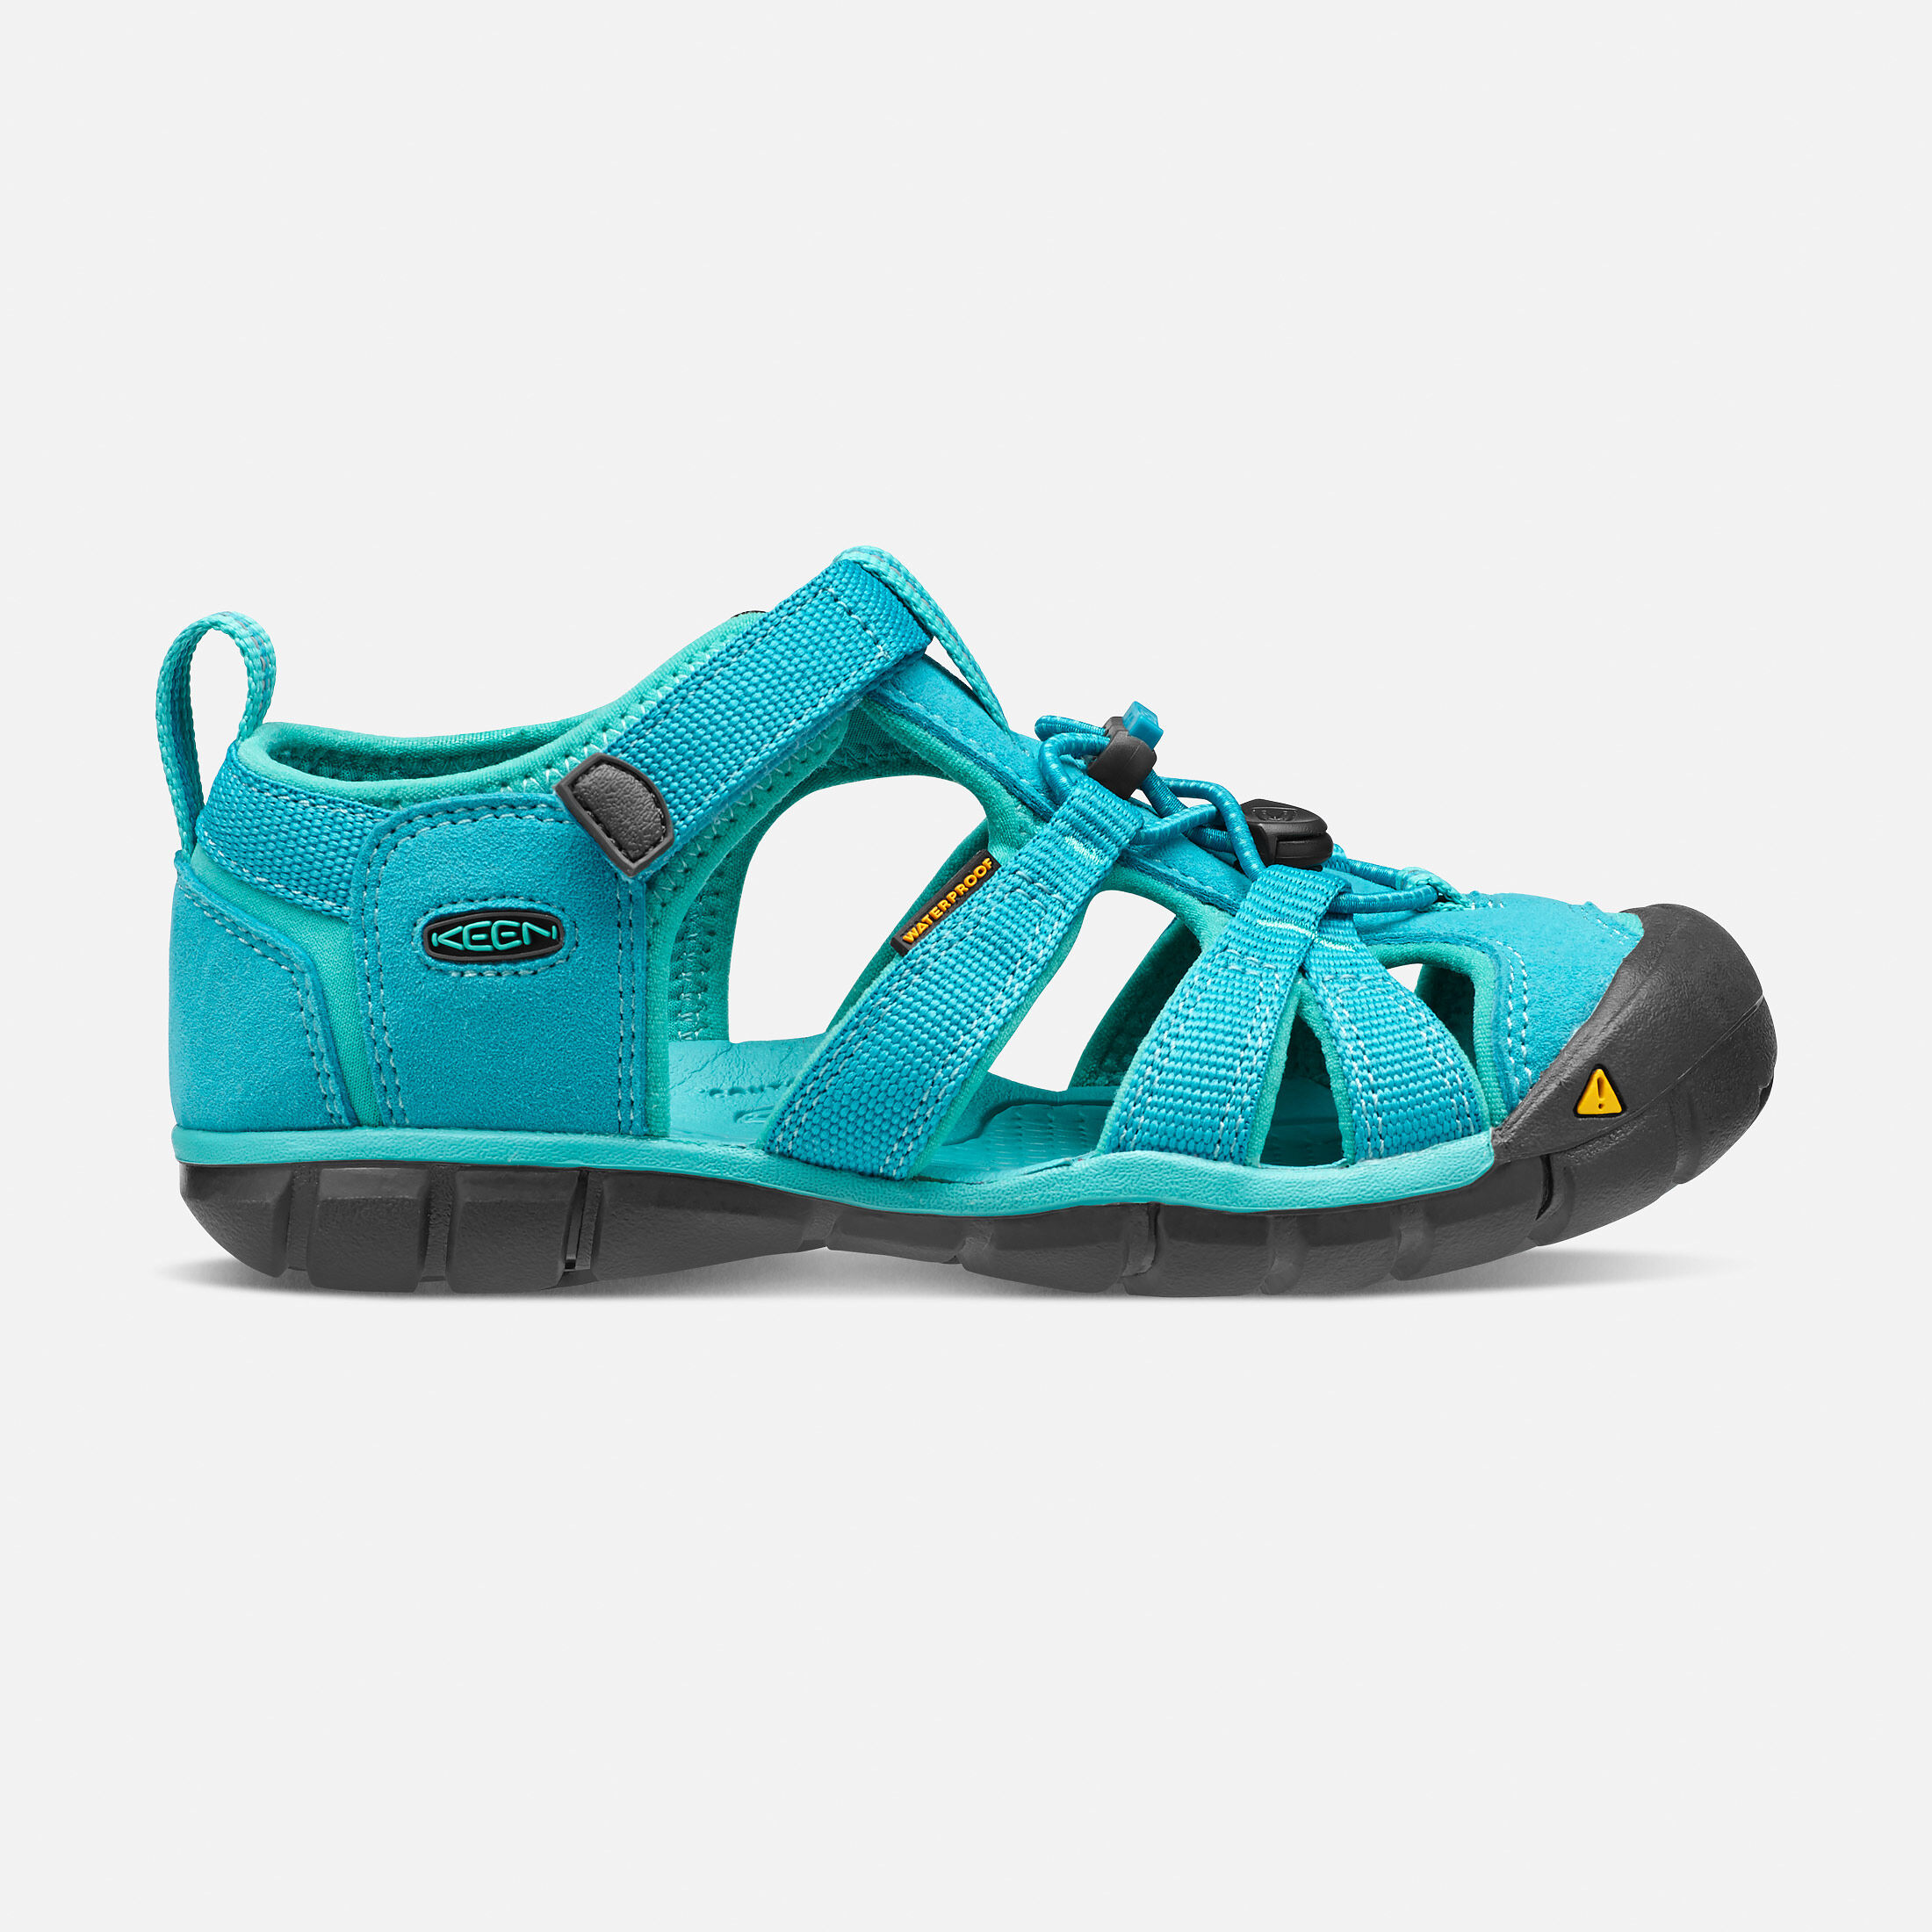 Seacamp II CNX - Water Sandals for